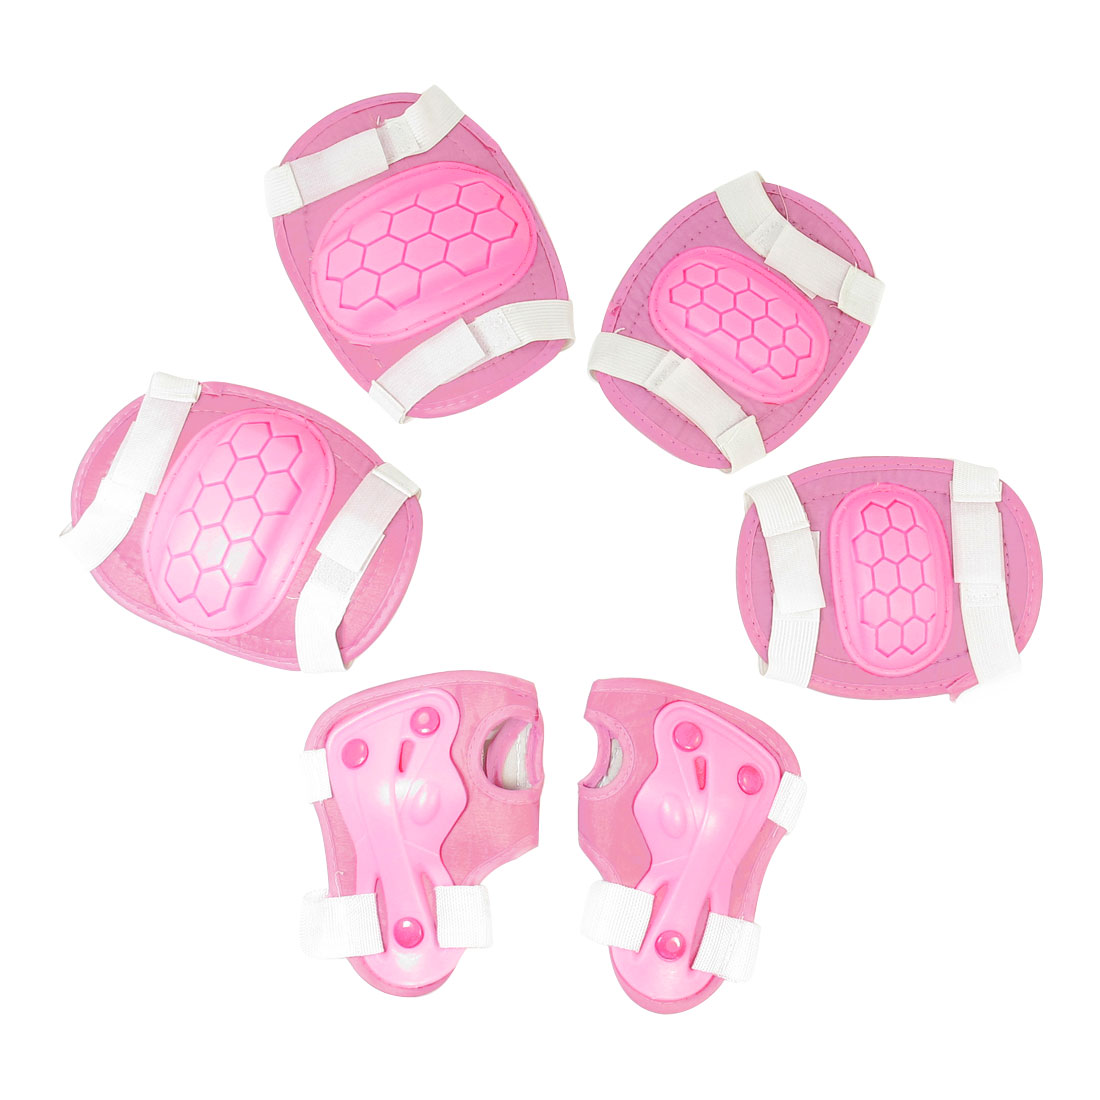 Skiting-Pink-Band-Arch-Design-Palm-Knee-Elbow-Support-Protector-for-Children